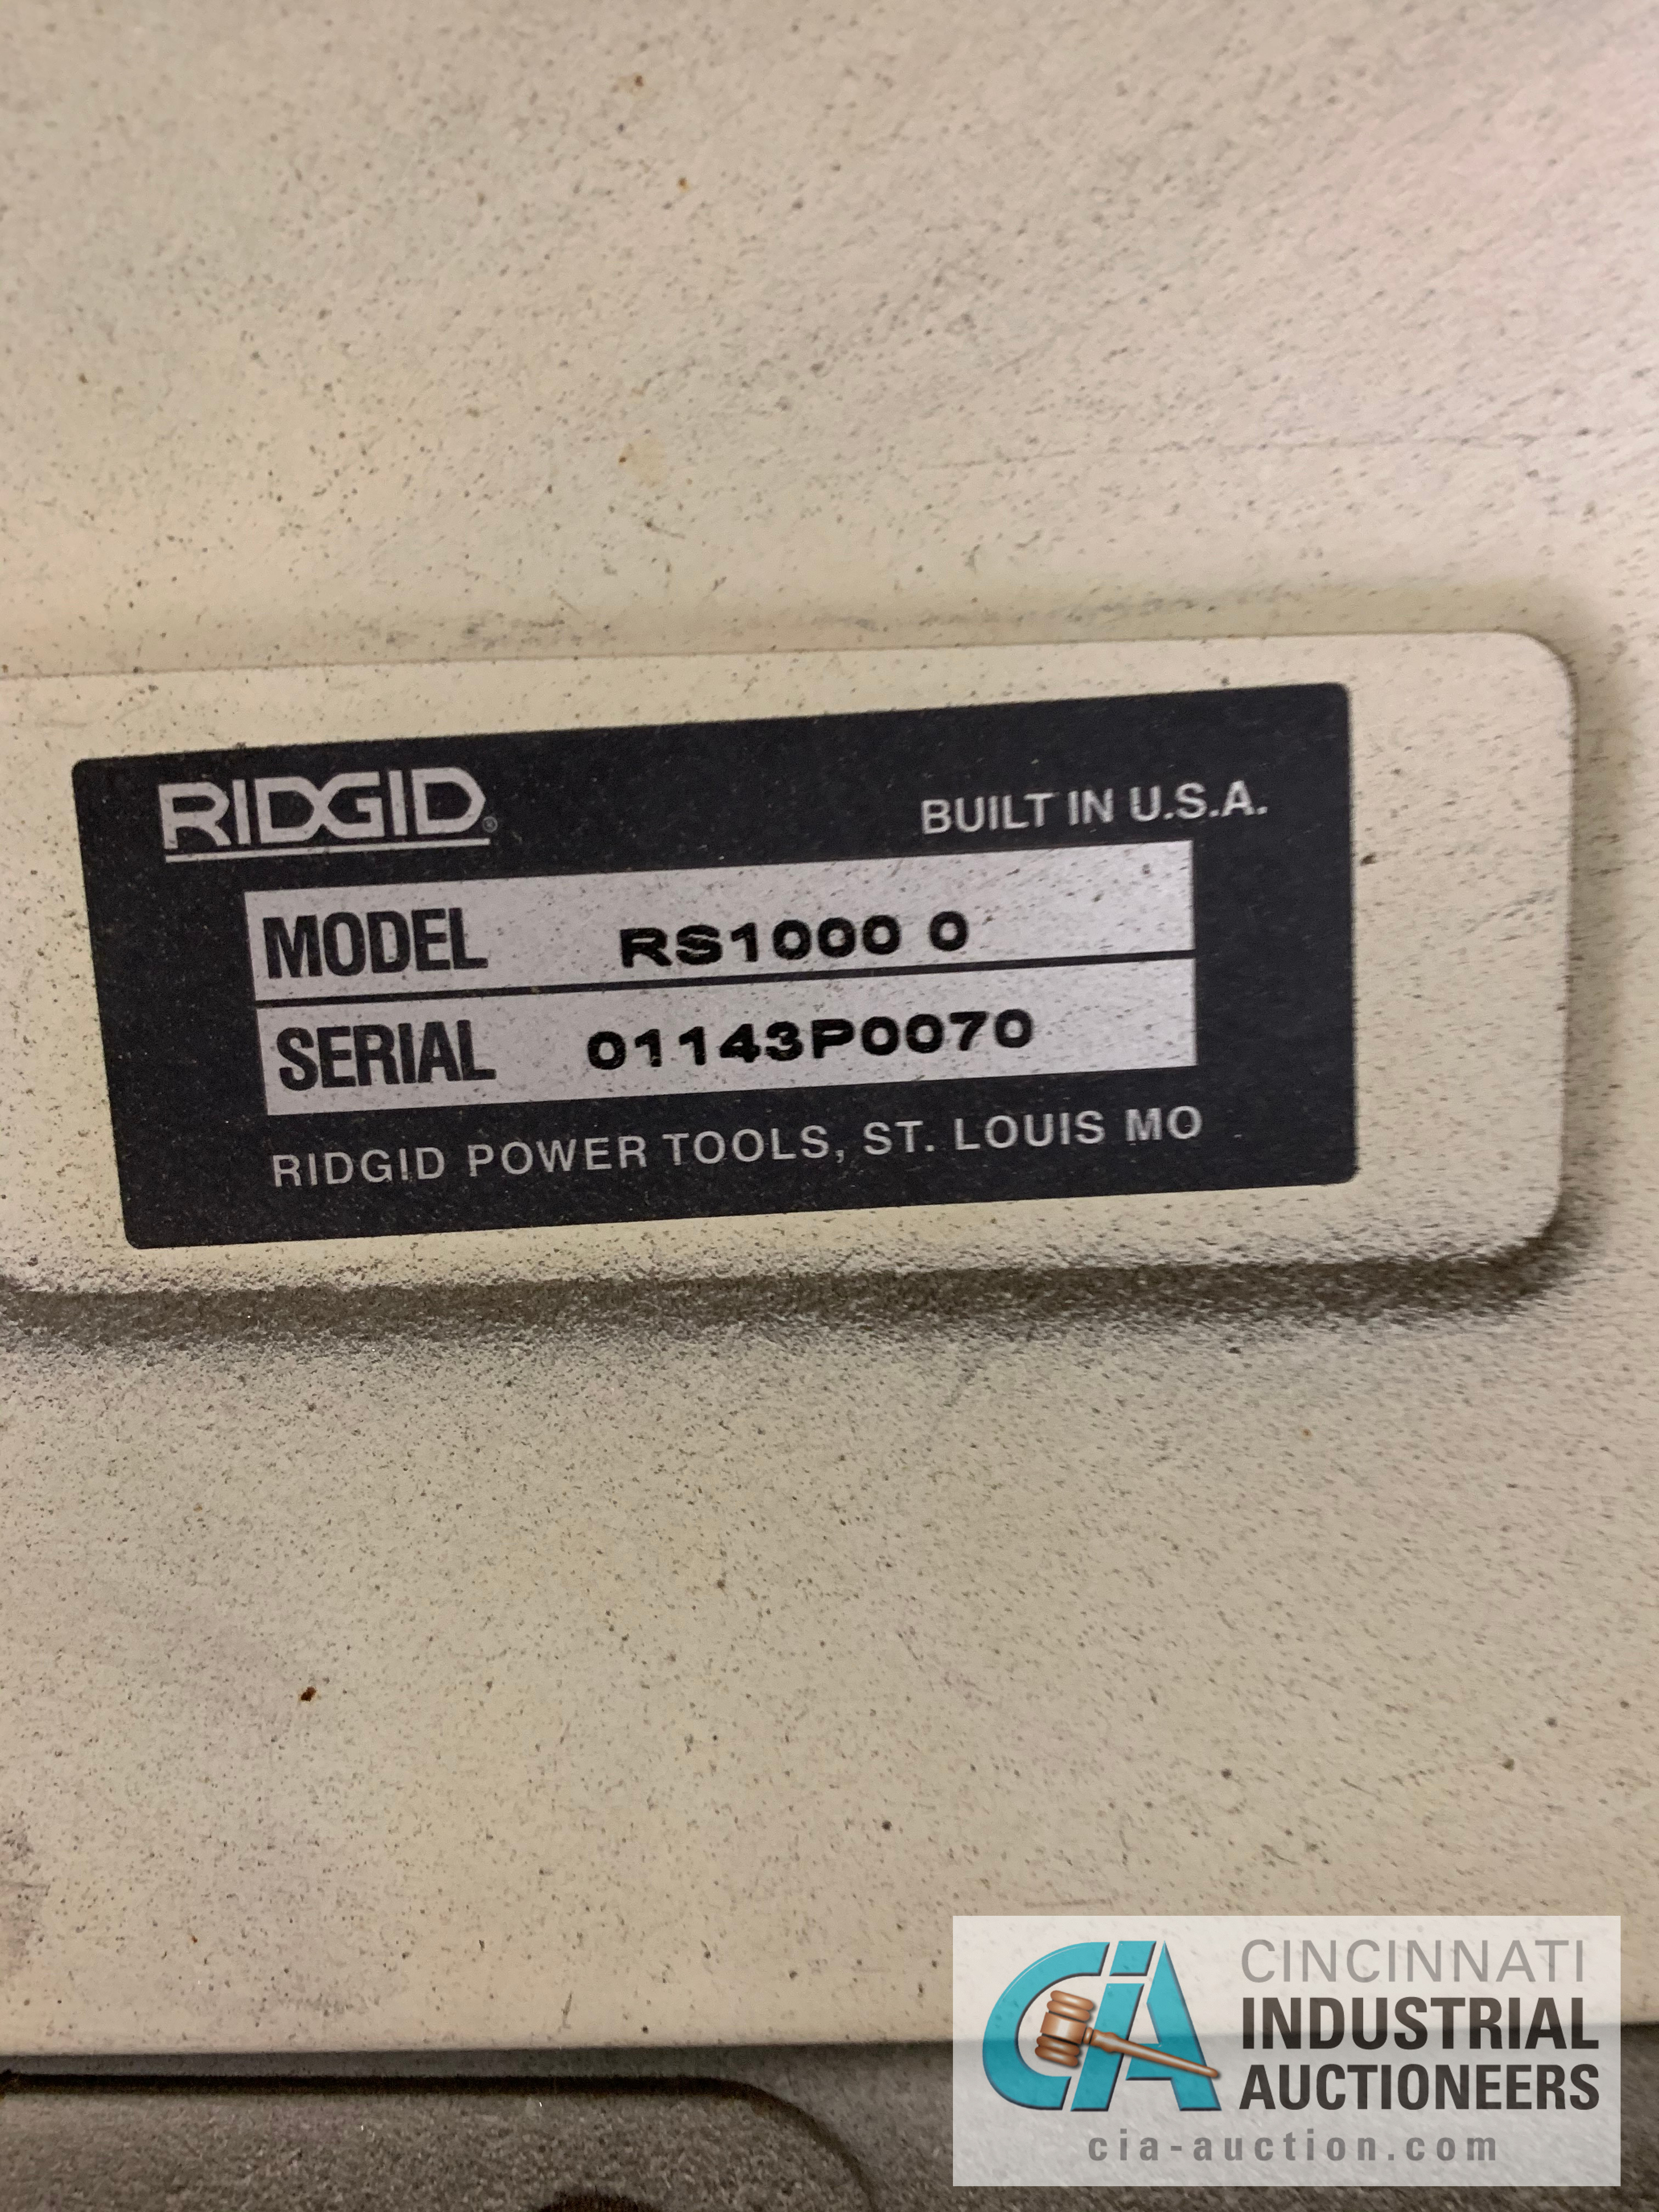 RIGID RS1000 RADIAL ARM SAW **RIGGING FEE DUE TO SHOEMAKER $50.00** - Image 2 of 3